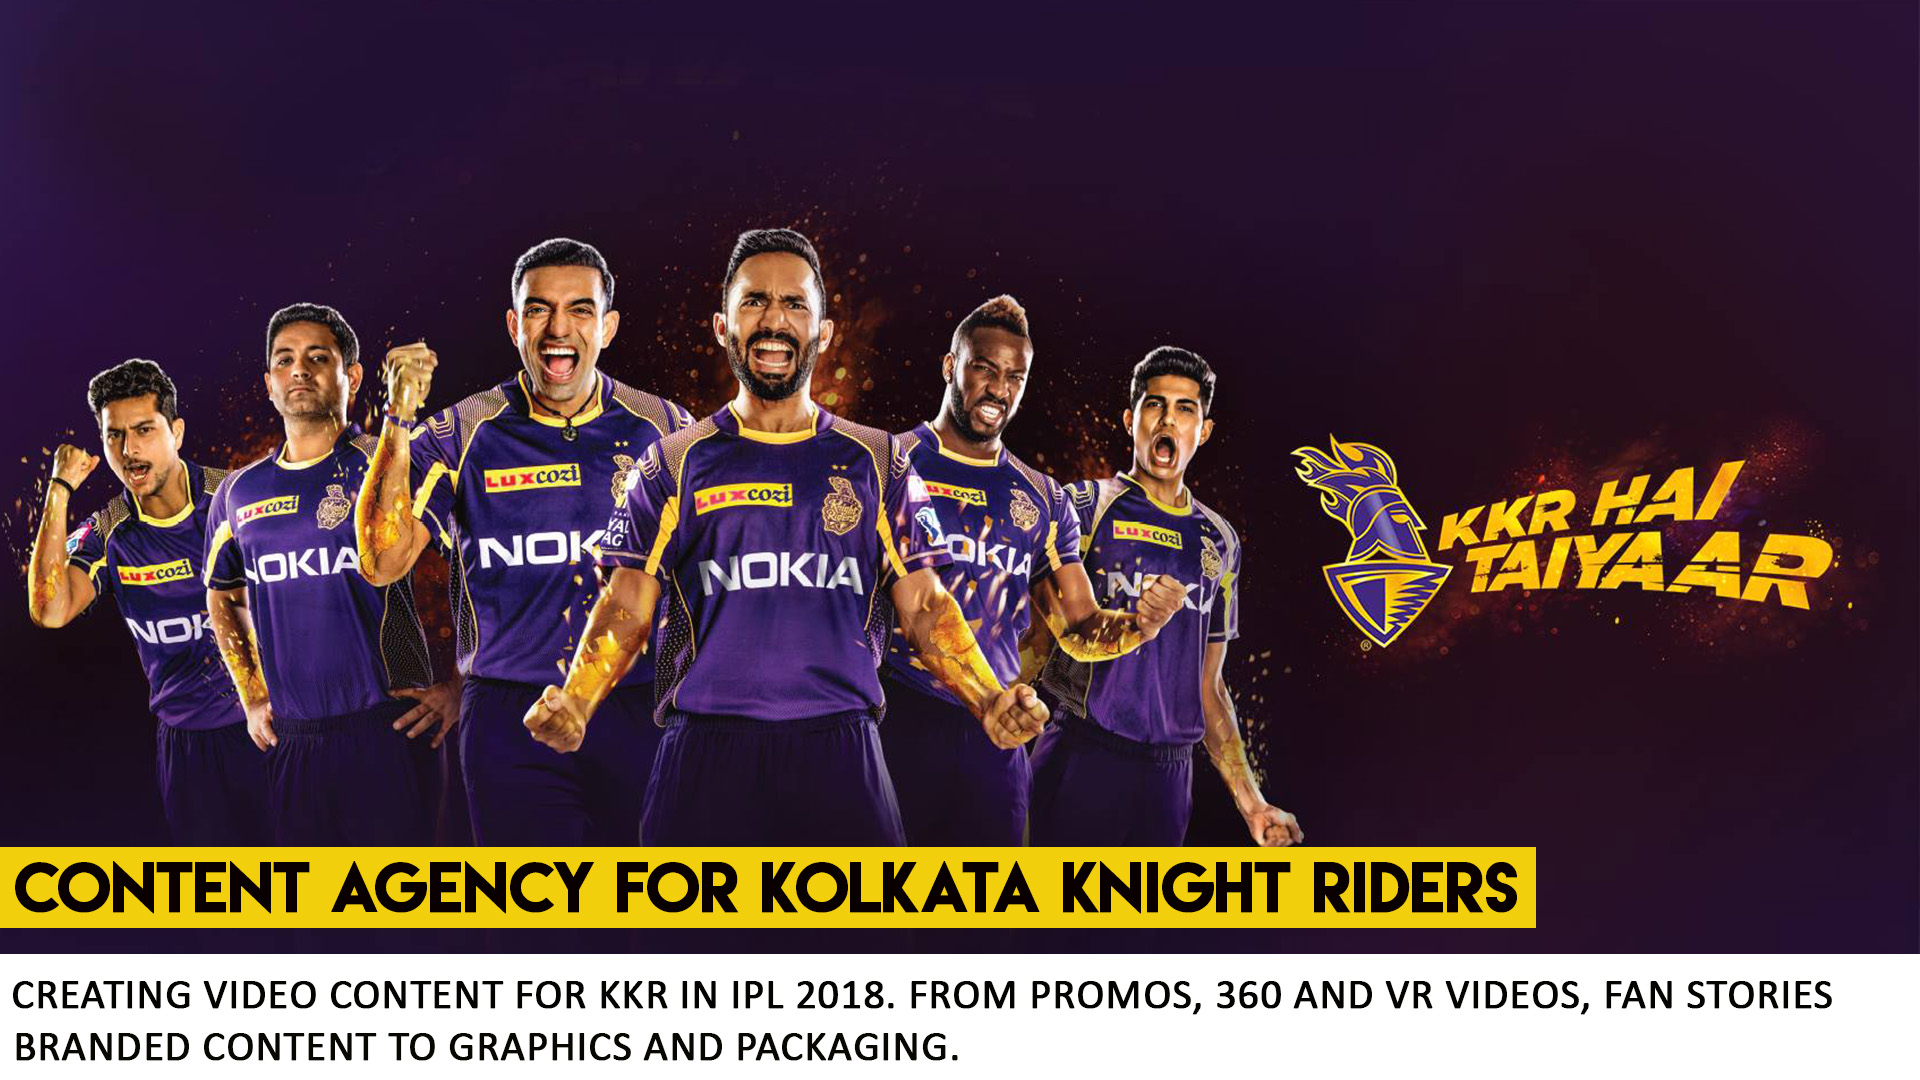 Kolkata Knight Riders - Content Agency What Works